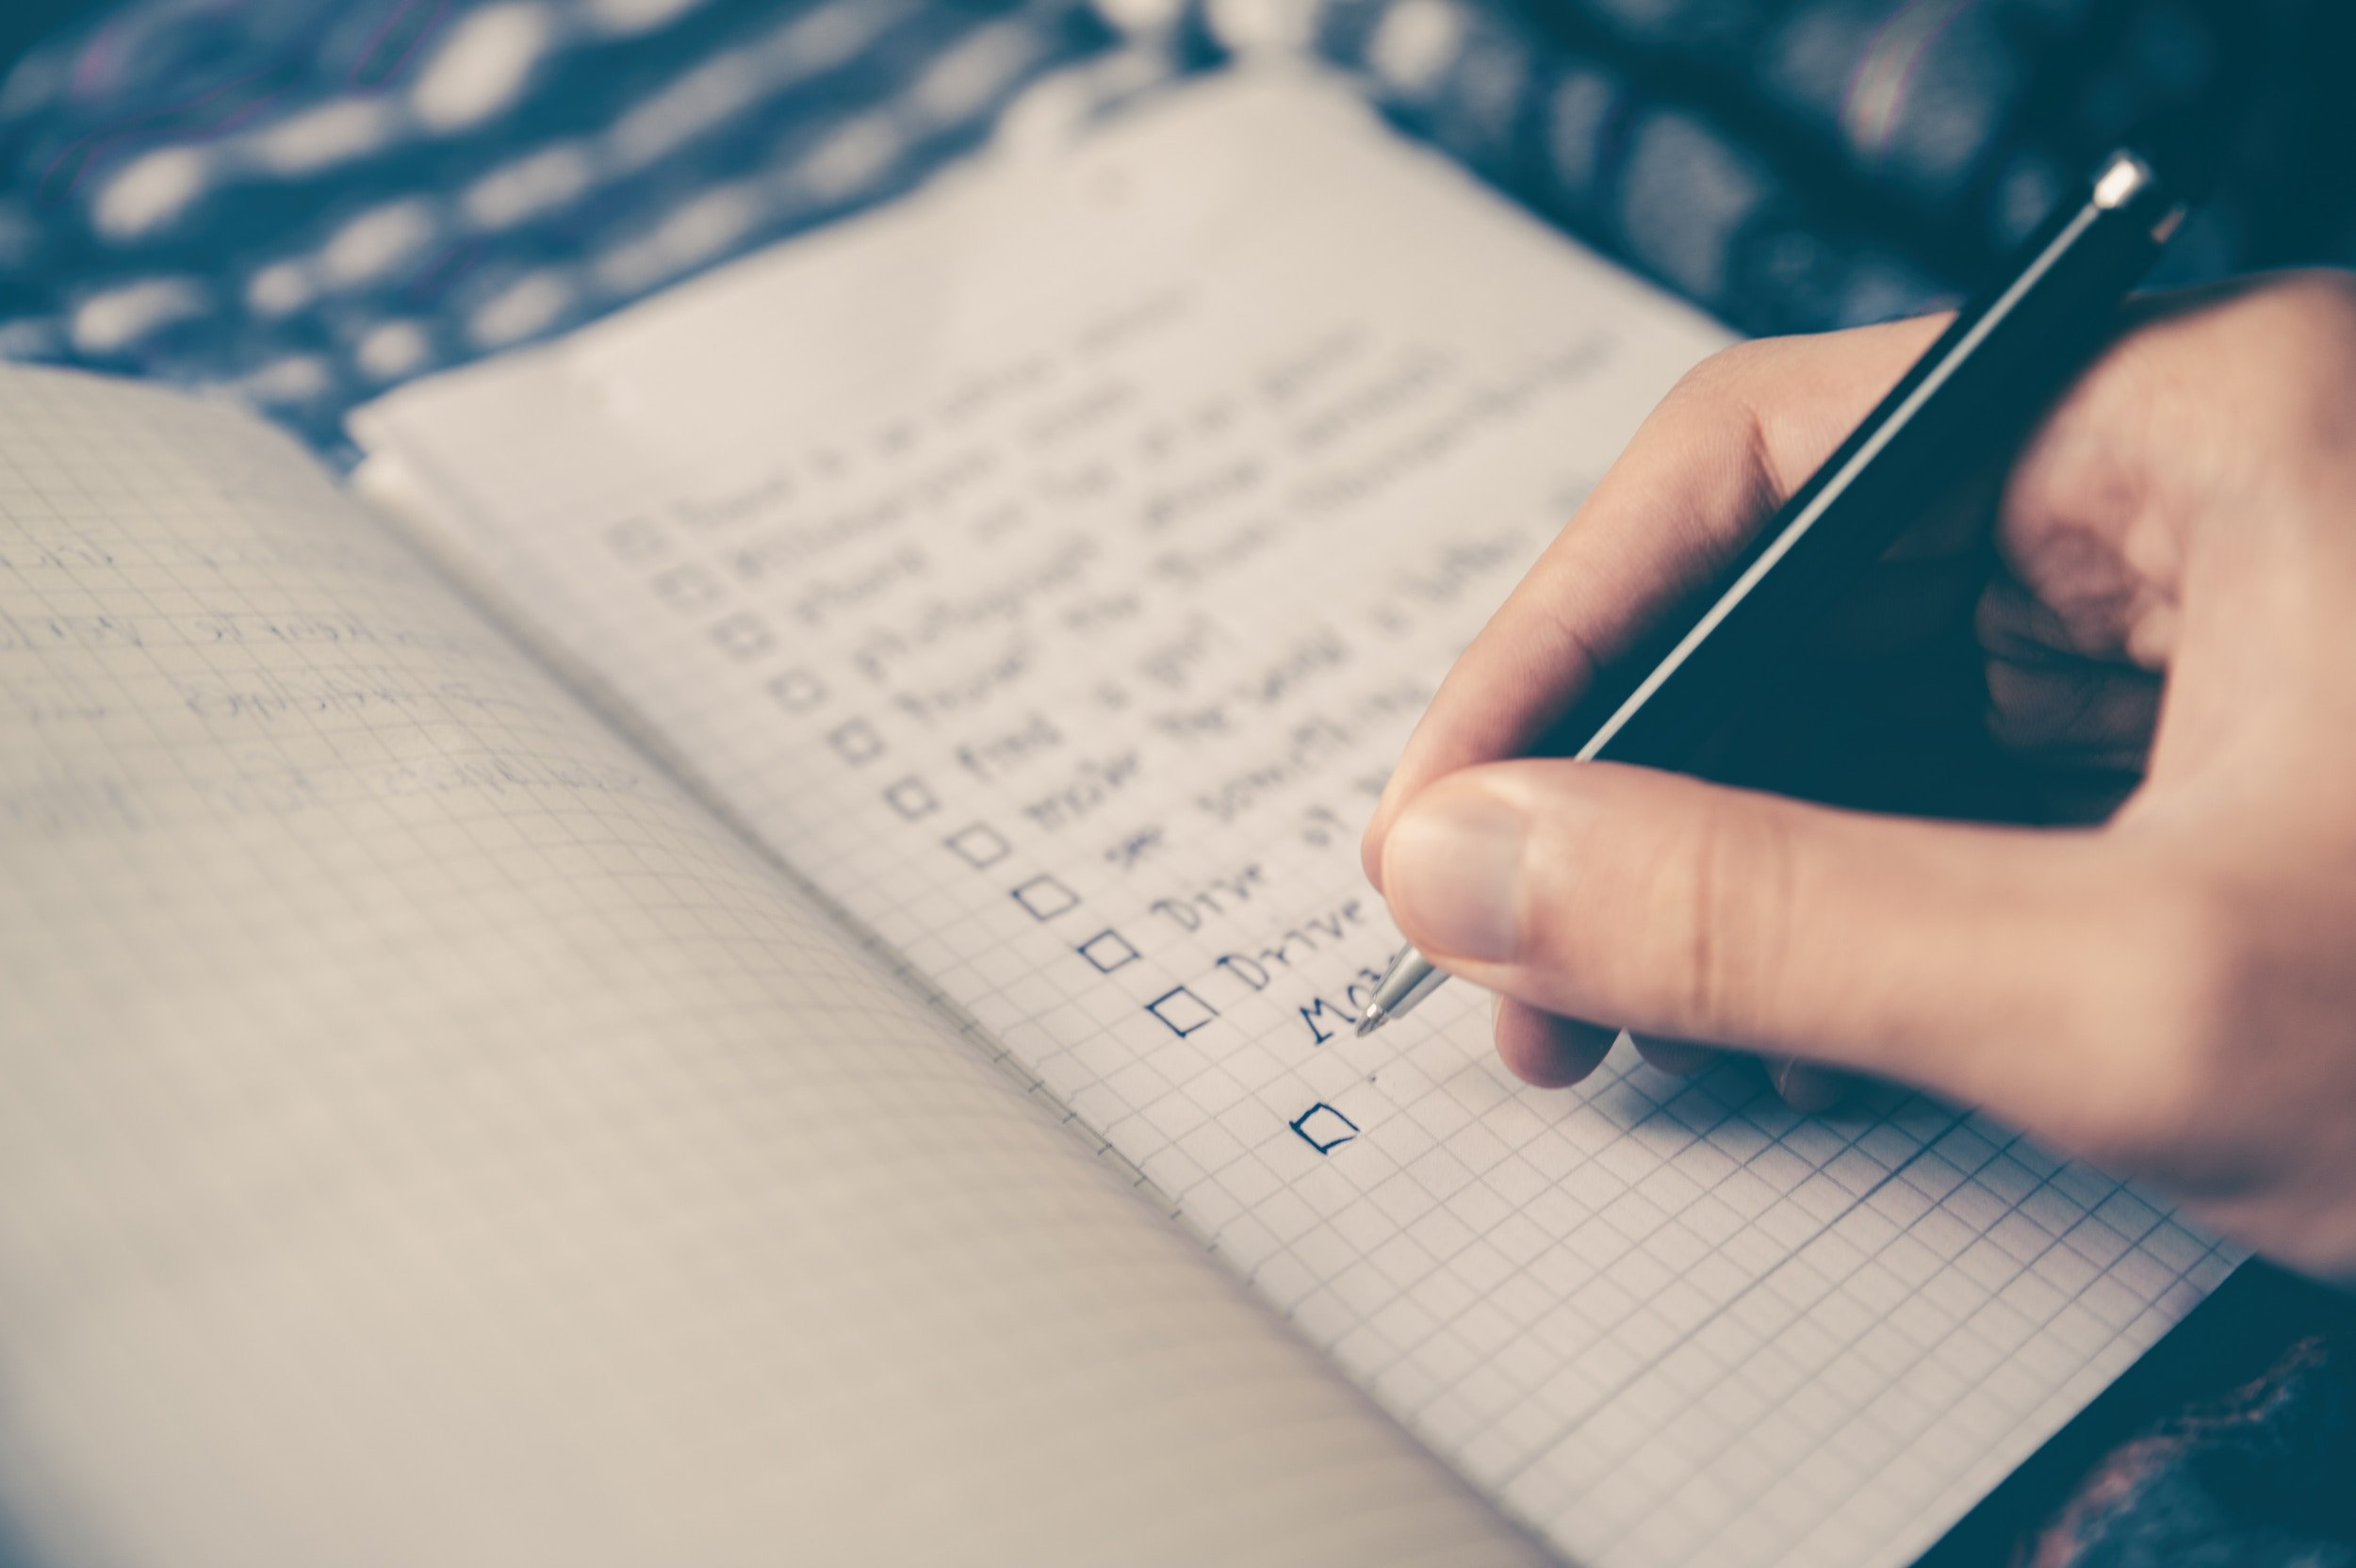 image of someone writing a list